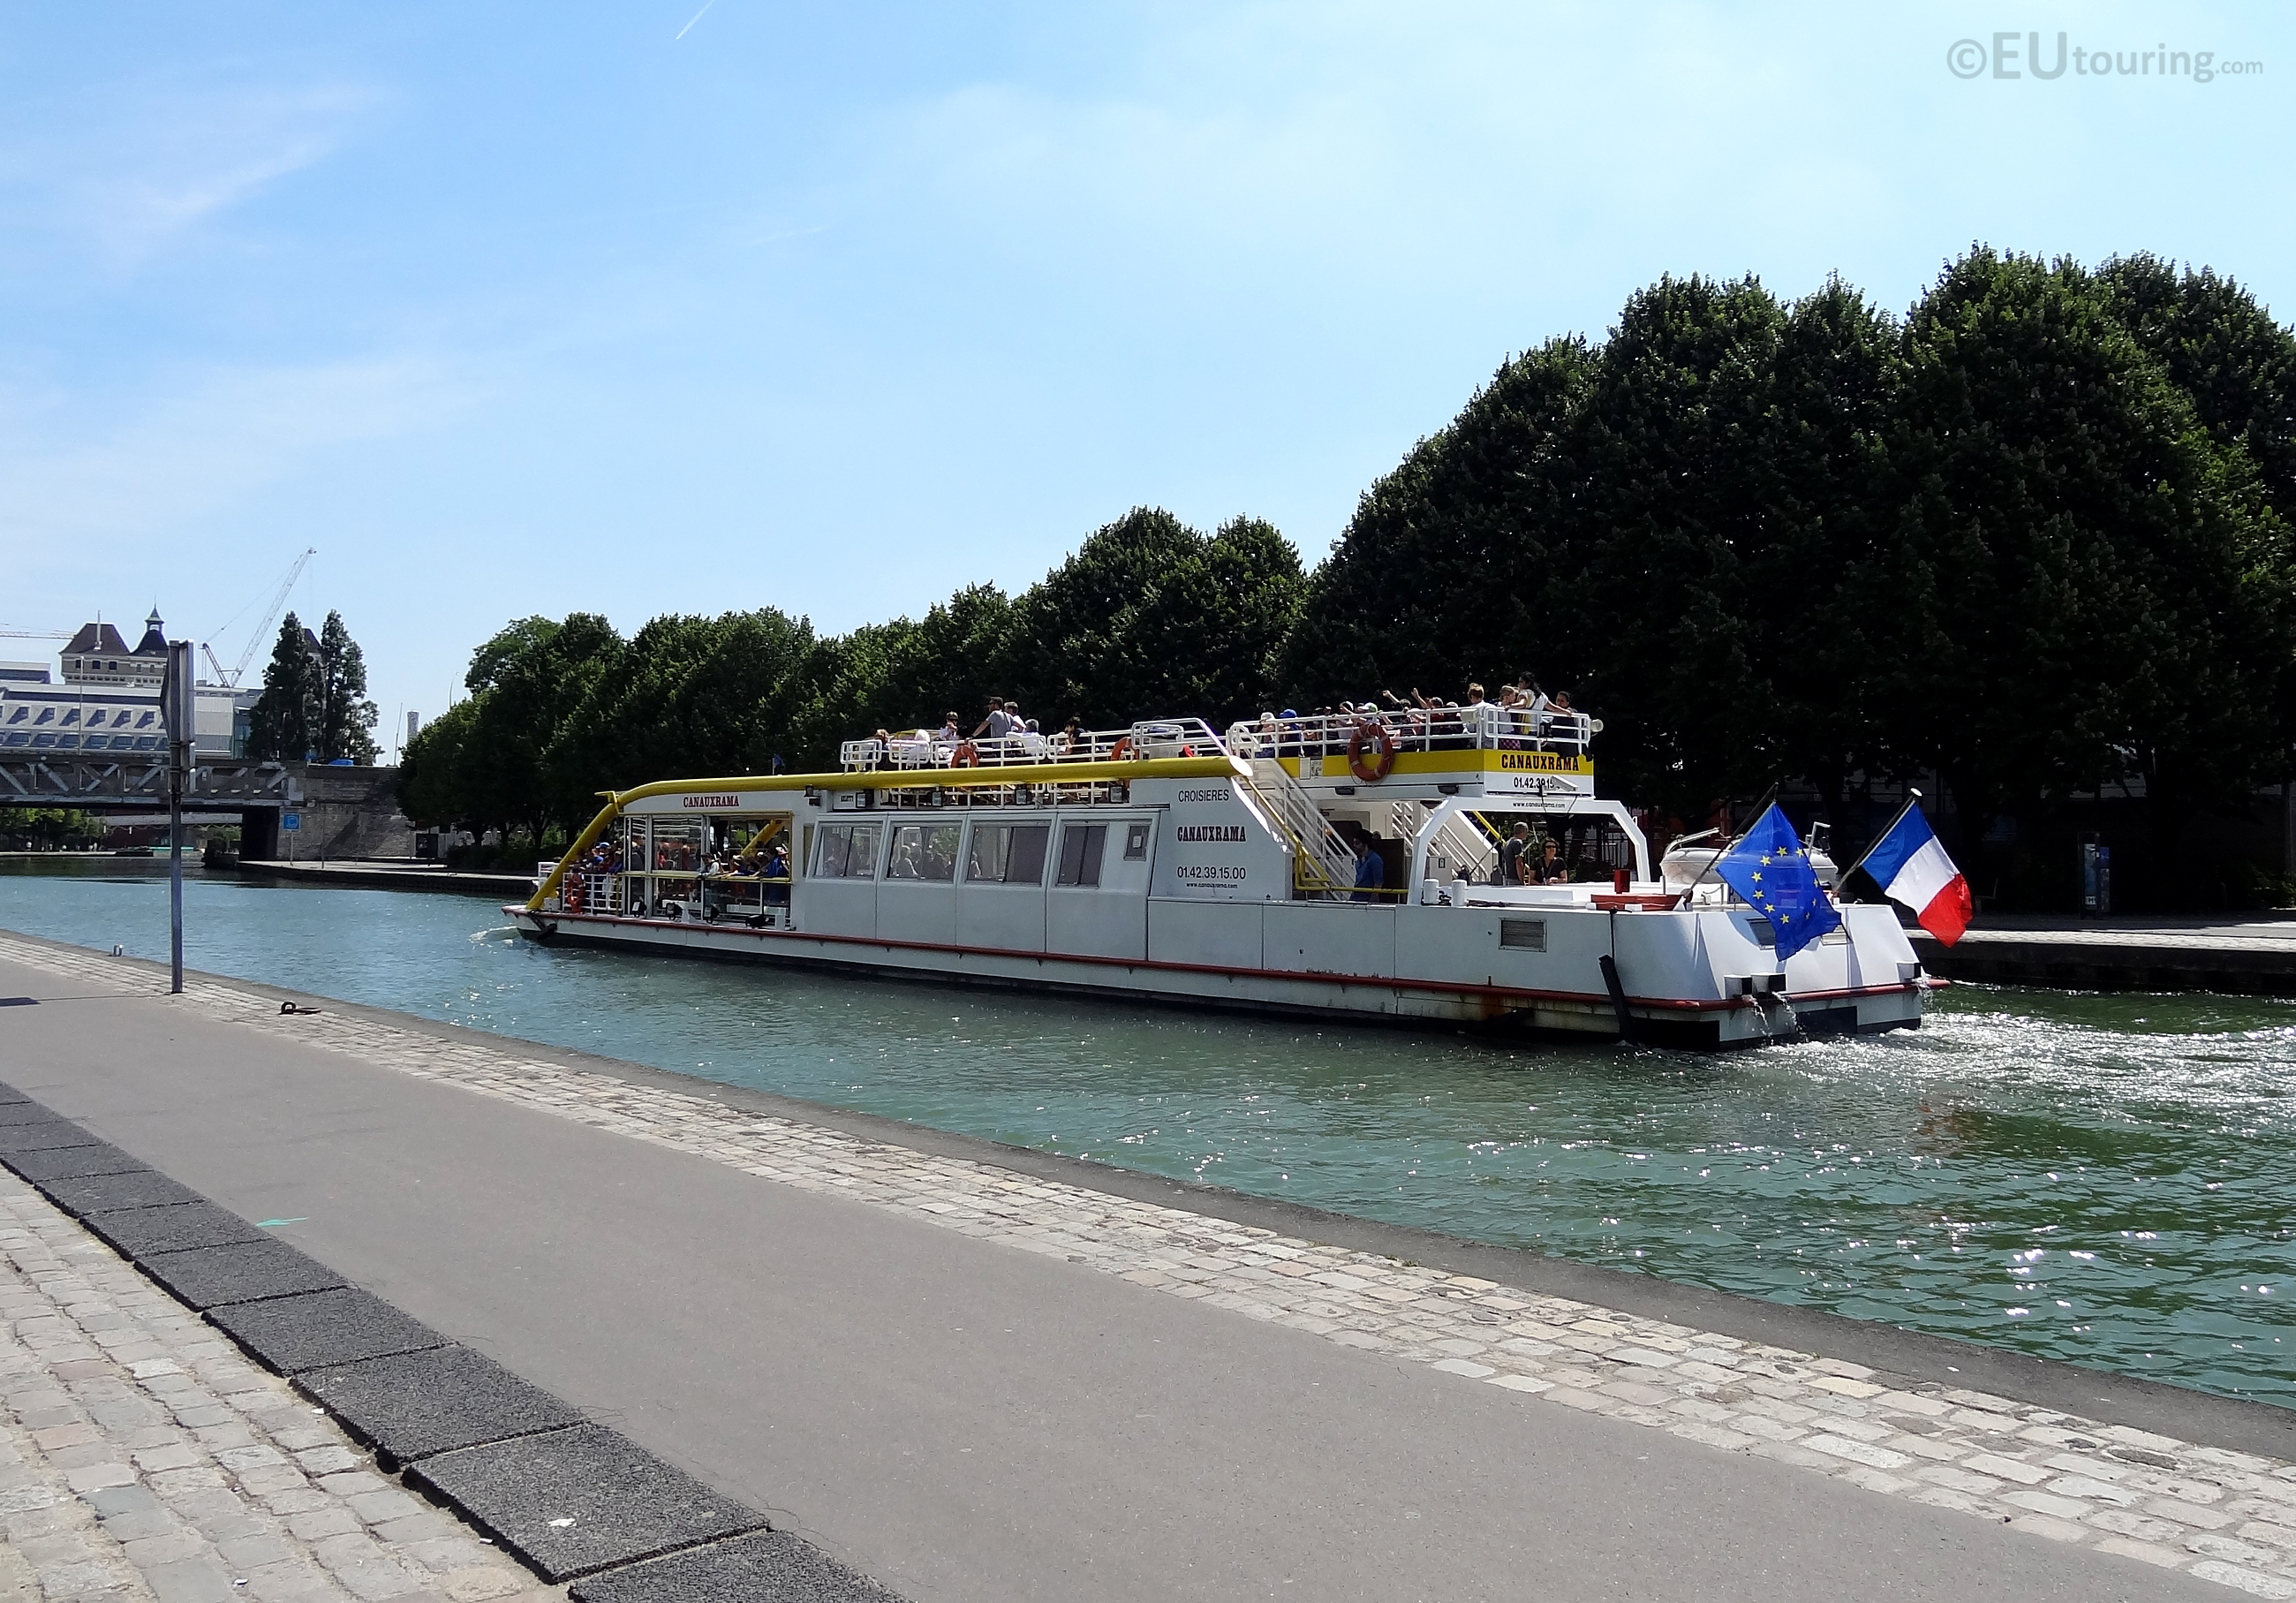 Canauxarama along the Canal de l'Ourcq